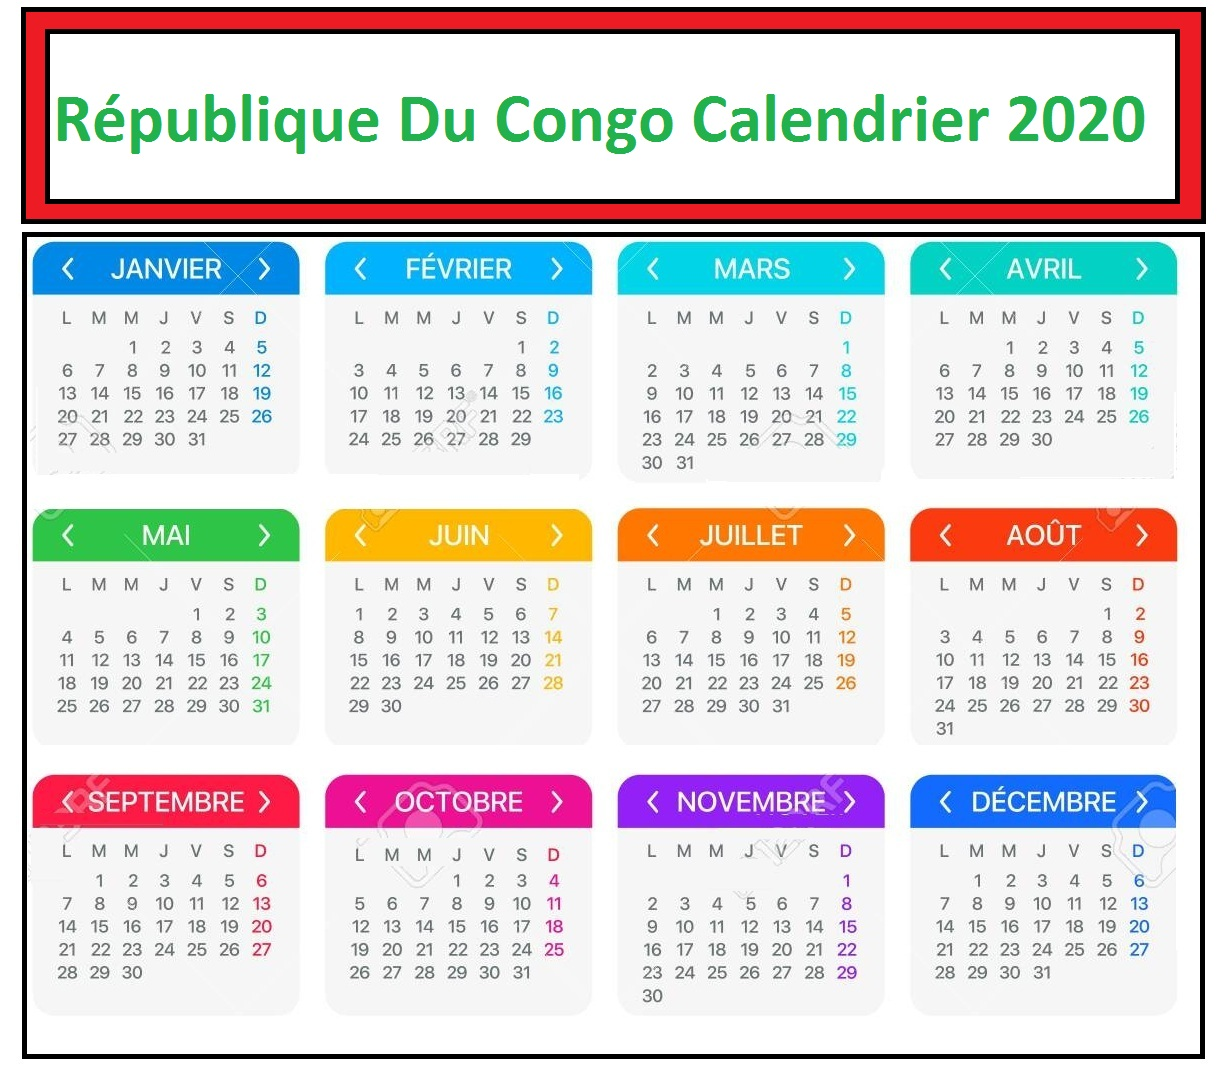 Calendrier Rdc Eliminatoire Can 2021